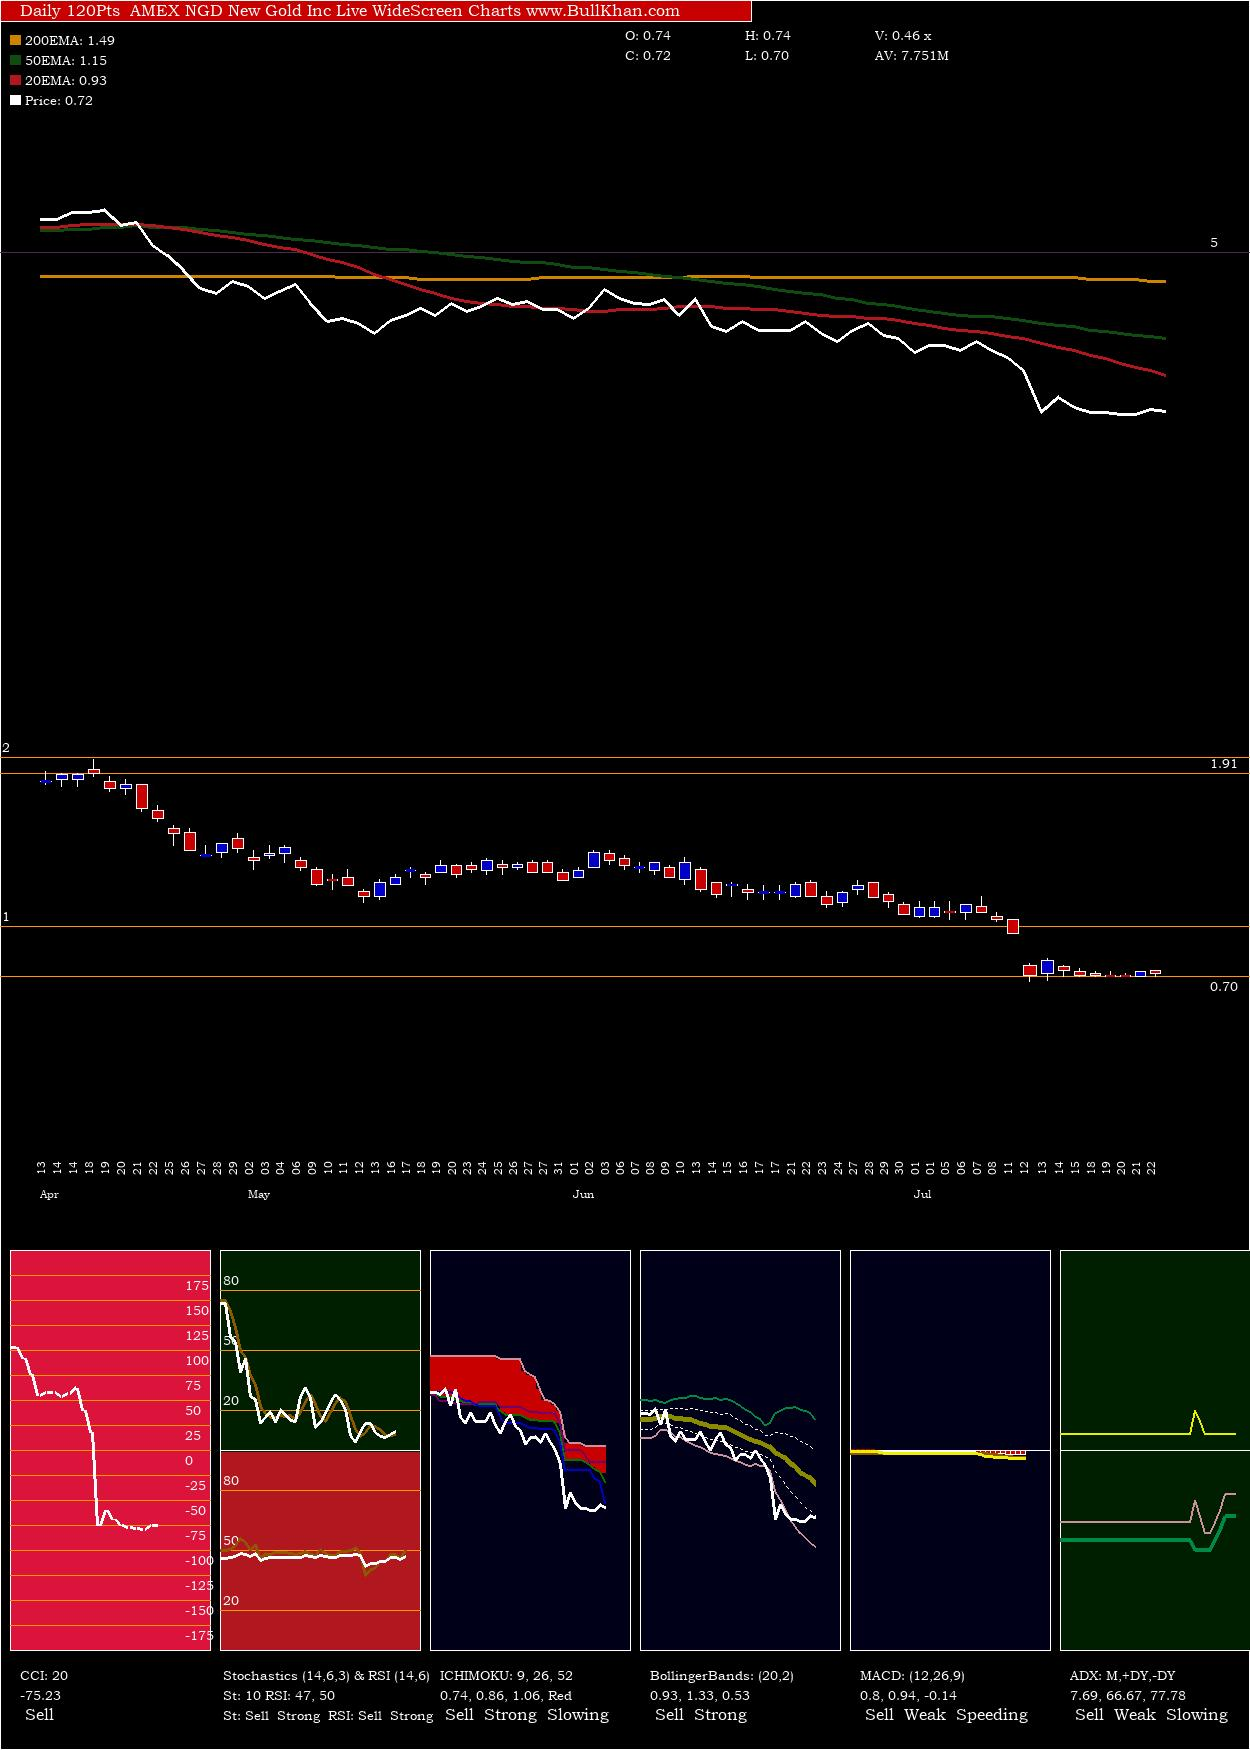 New Gold Inc charts and indicators